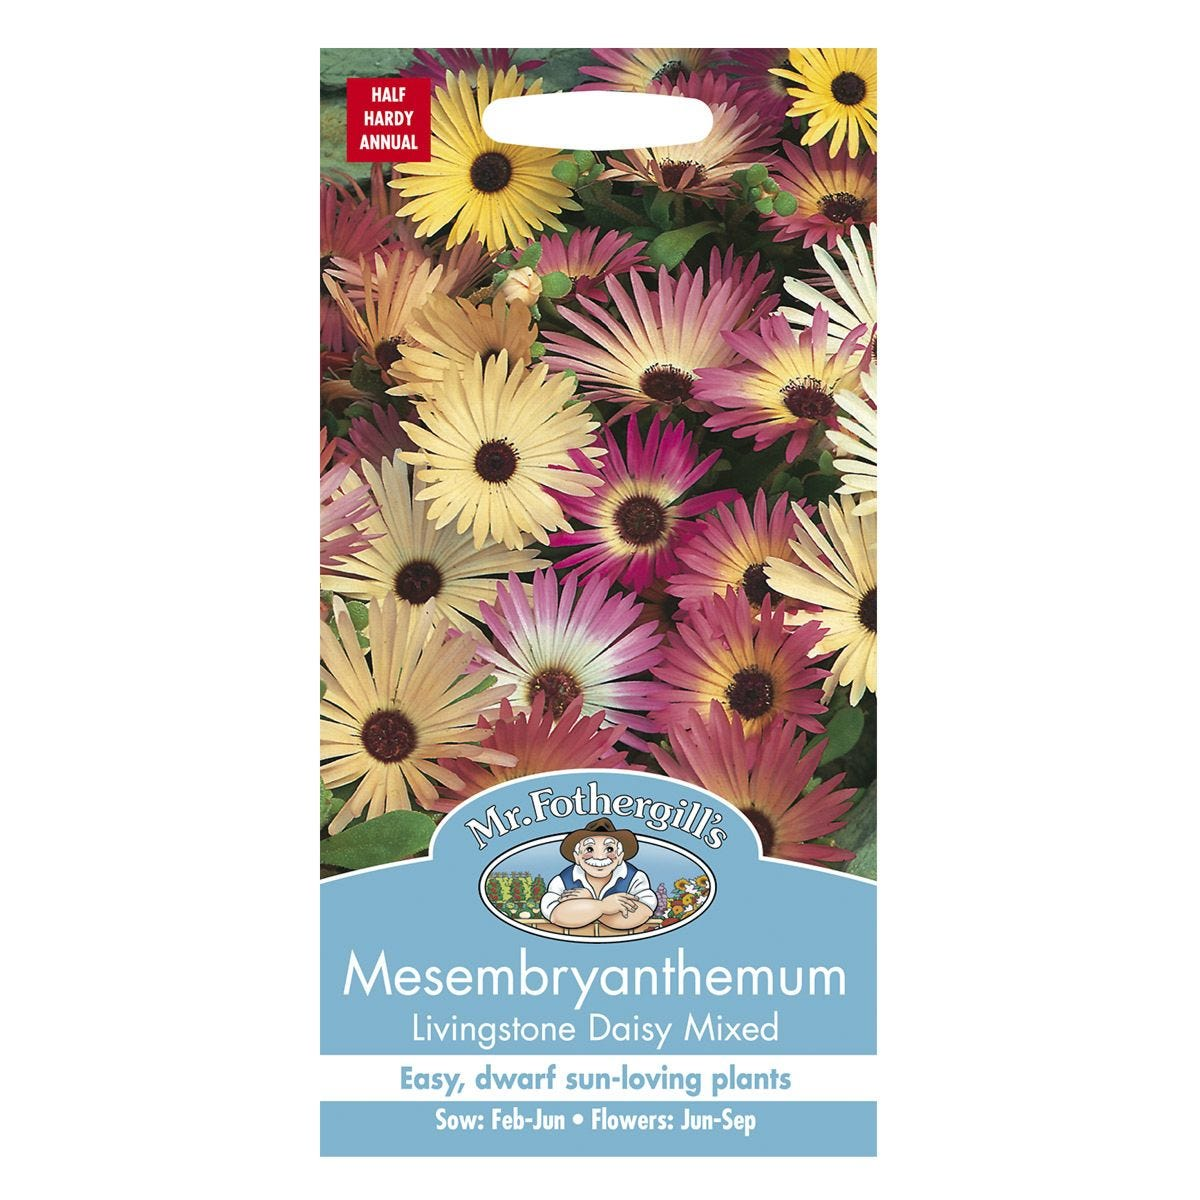 Mr Fothergill's Mesembryanthemum Livingstone Daisy Mixed Seeds